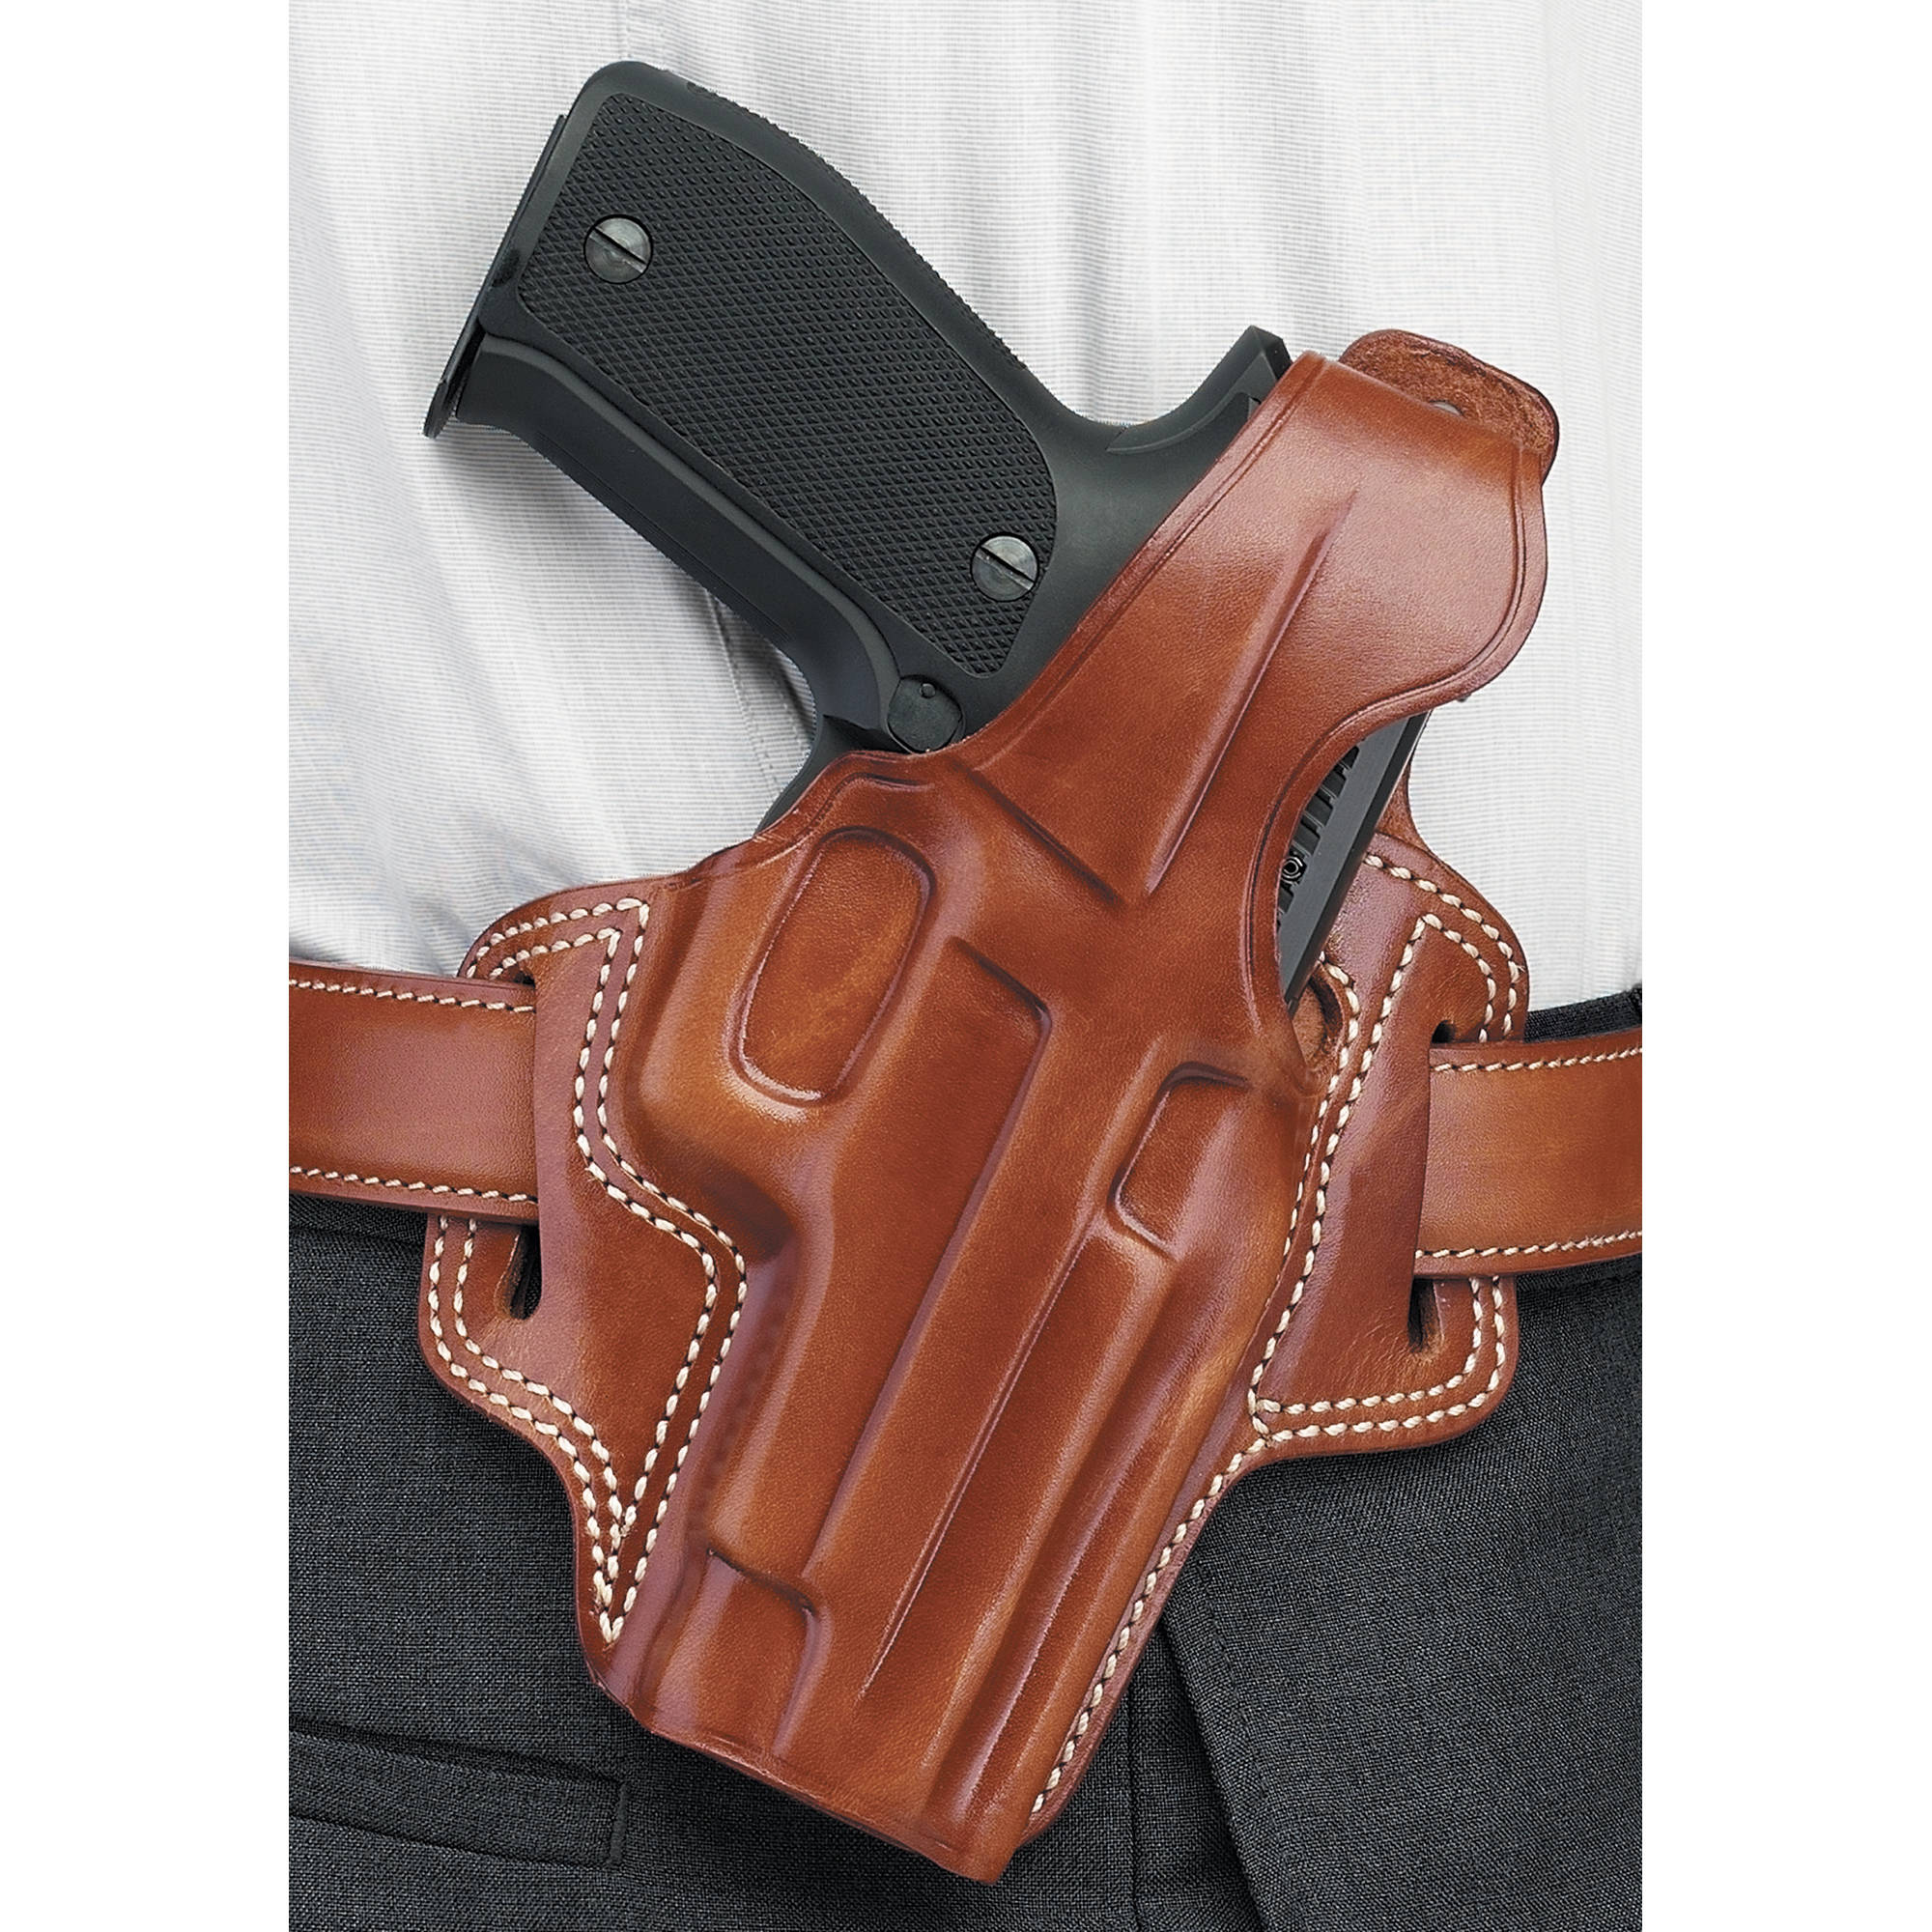 Galco Fletch Holster, Fits Glock 19 23, Right Hand, Tan Leather by Galco